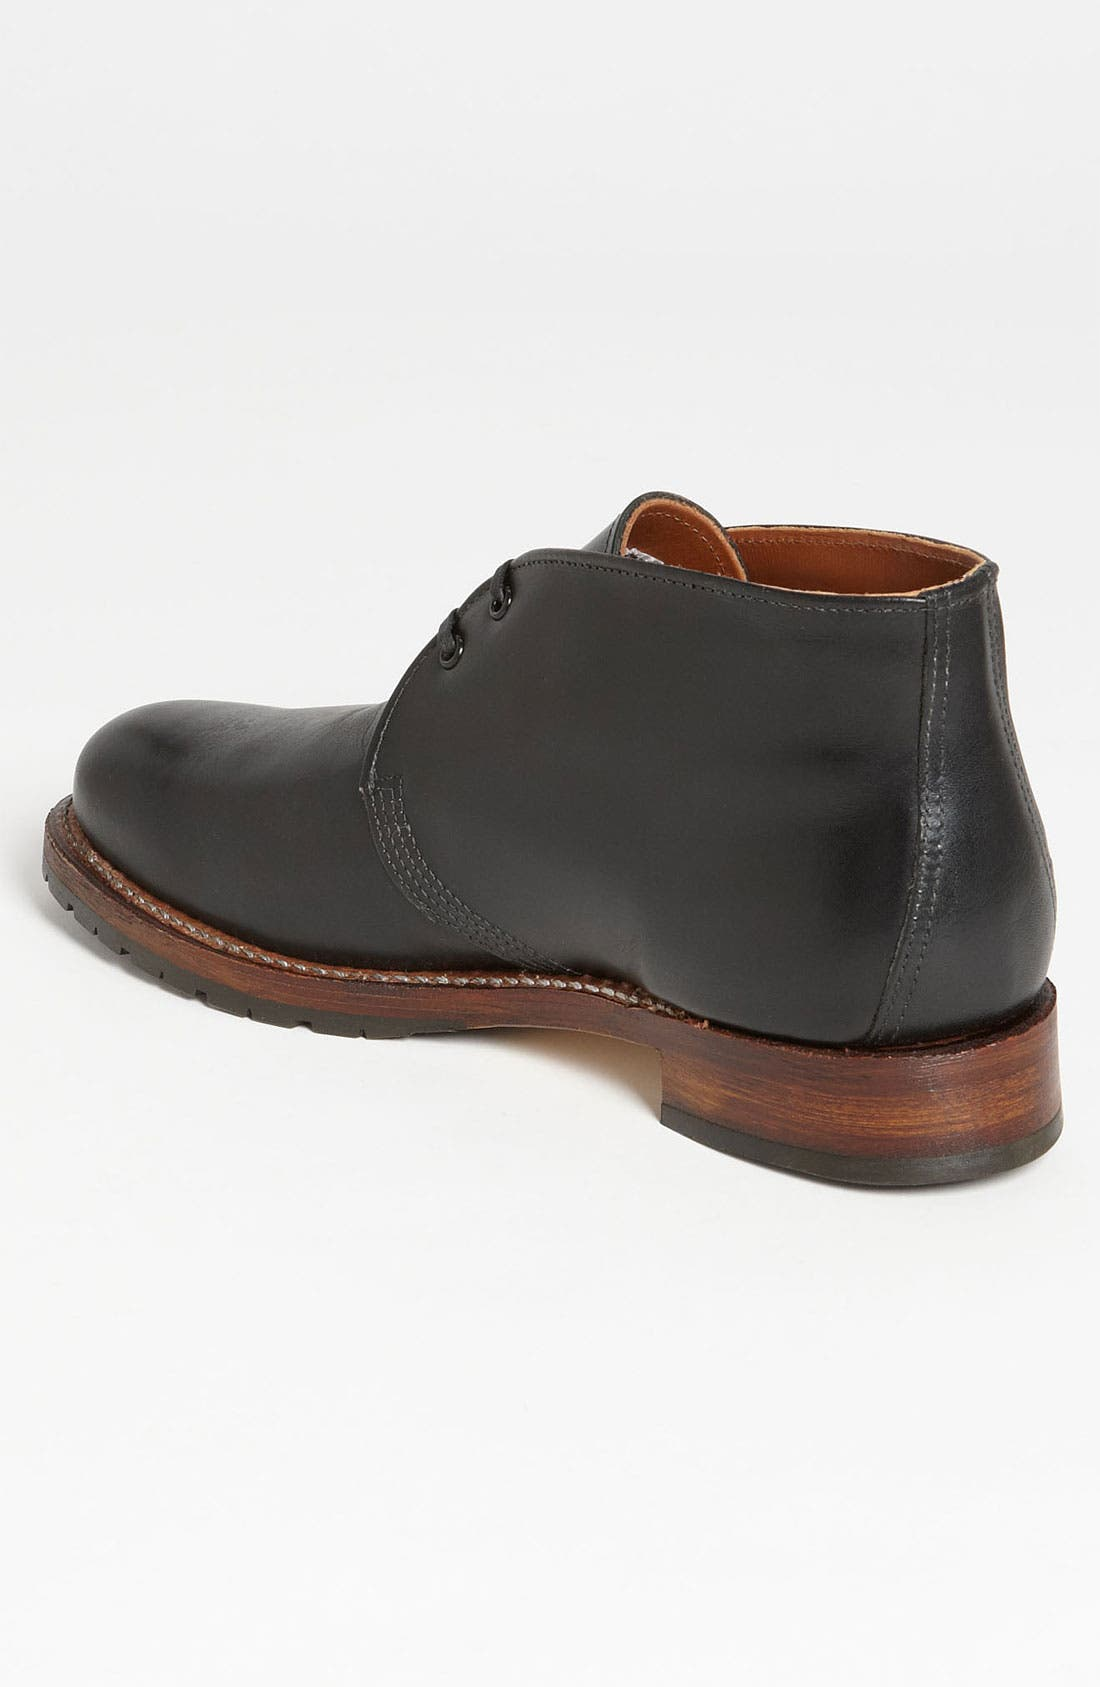 'Beckman' Chukka Boot,                             Alternate thumbnail 3, color,                             001